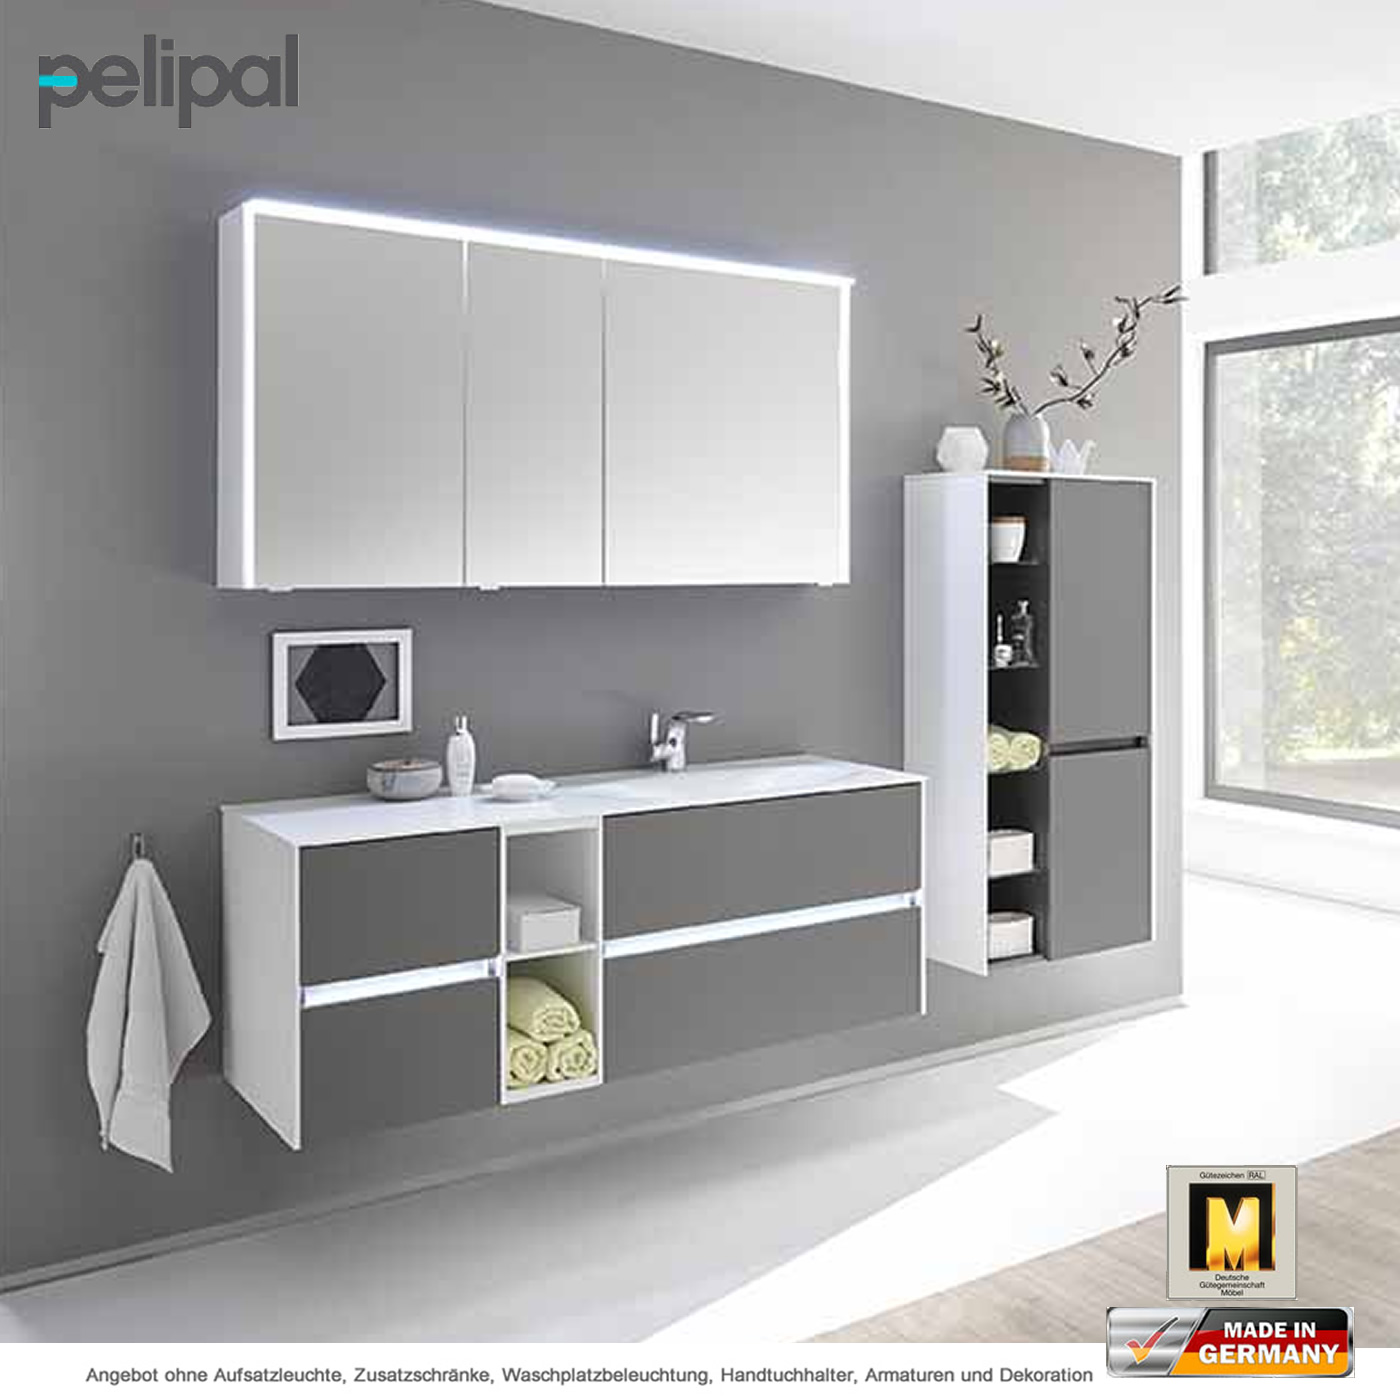 pelipal solitaire 6010 badm belset 133 cm mit spiegelschrank waschtisch und unterschrank 4. Black Bedroom Furniture Sets. Home Design Ideas